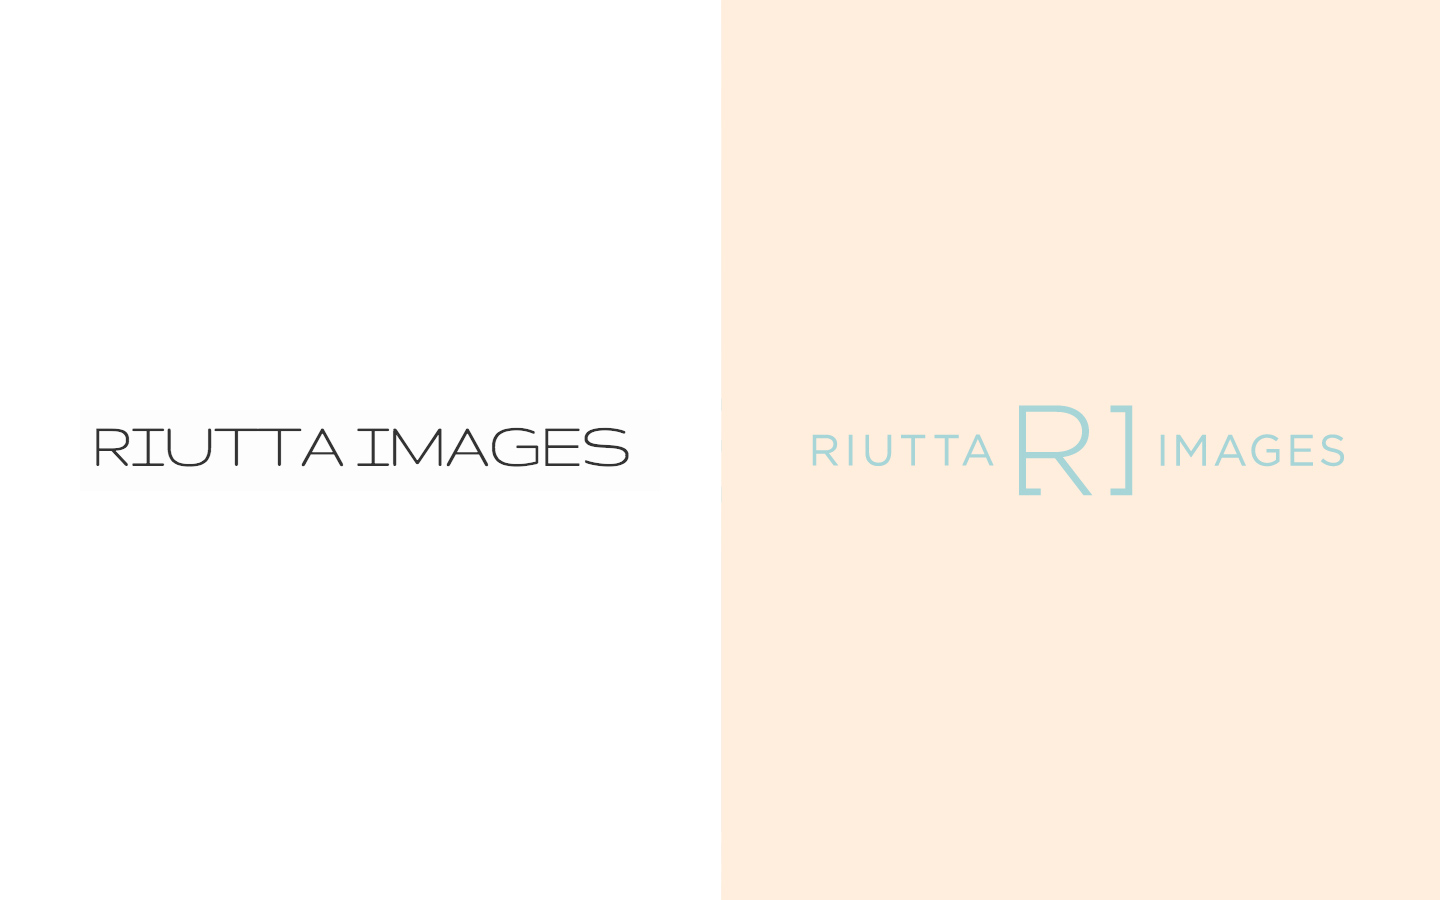 Riutta_images_application2